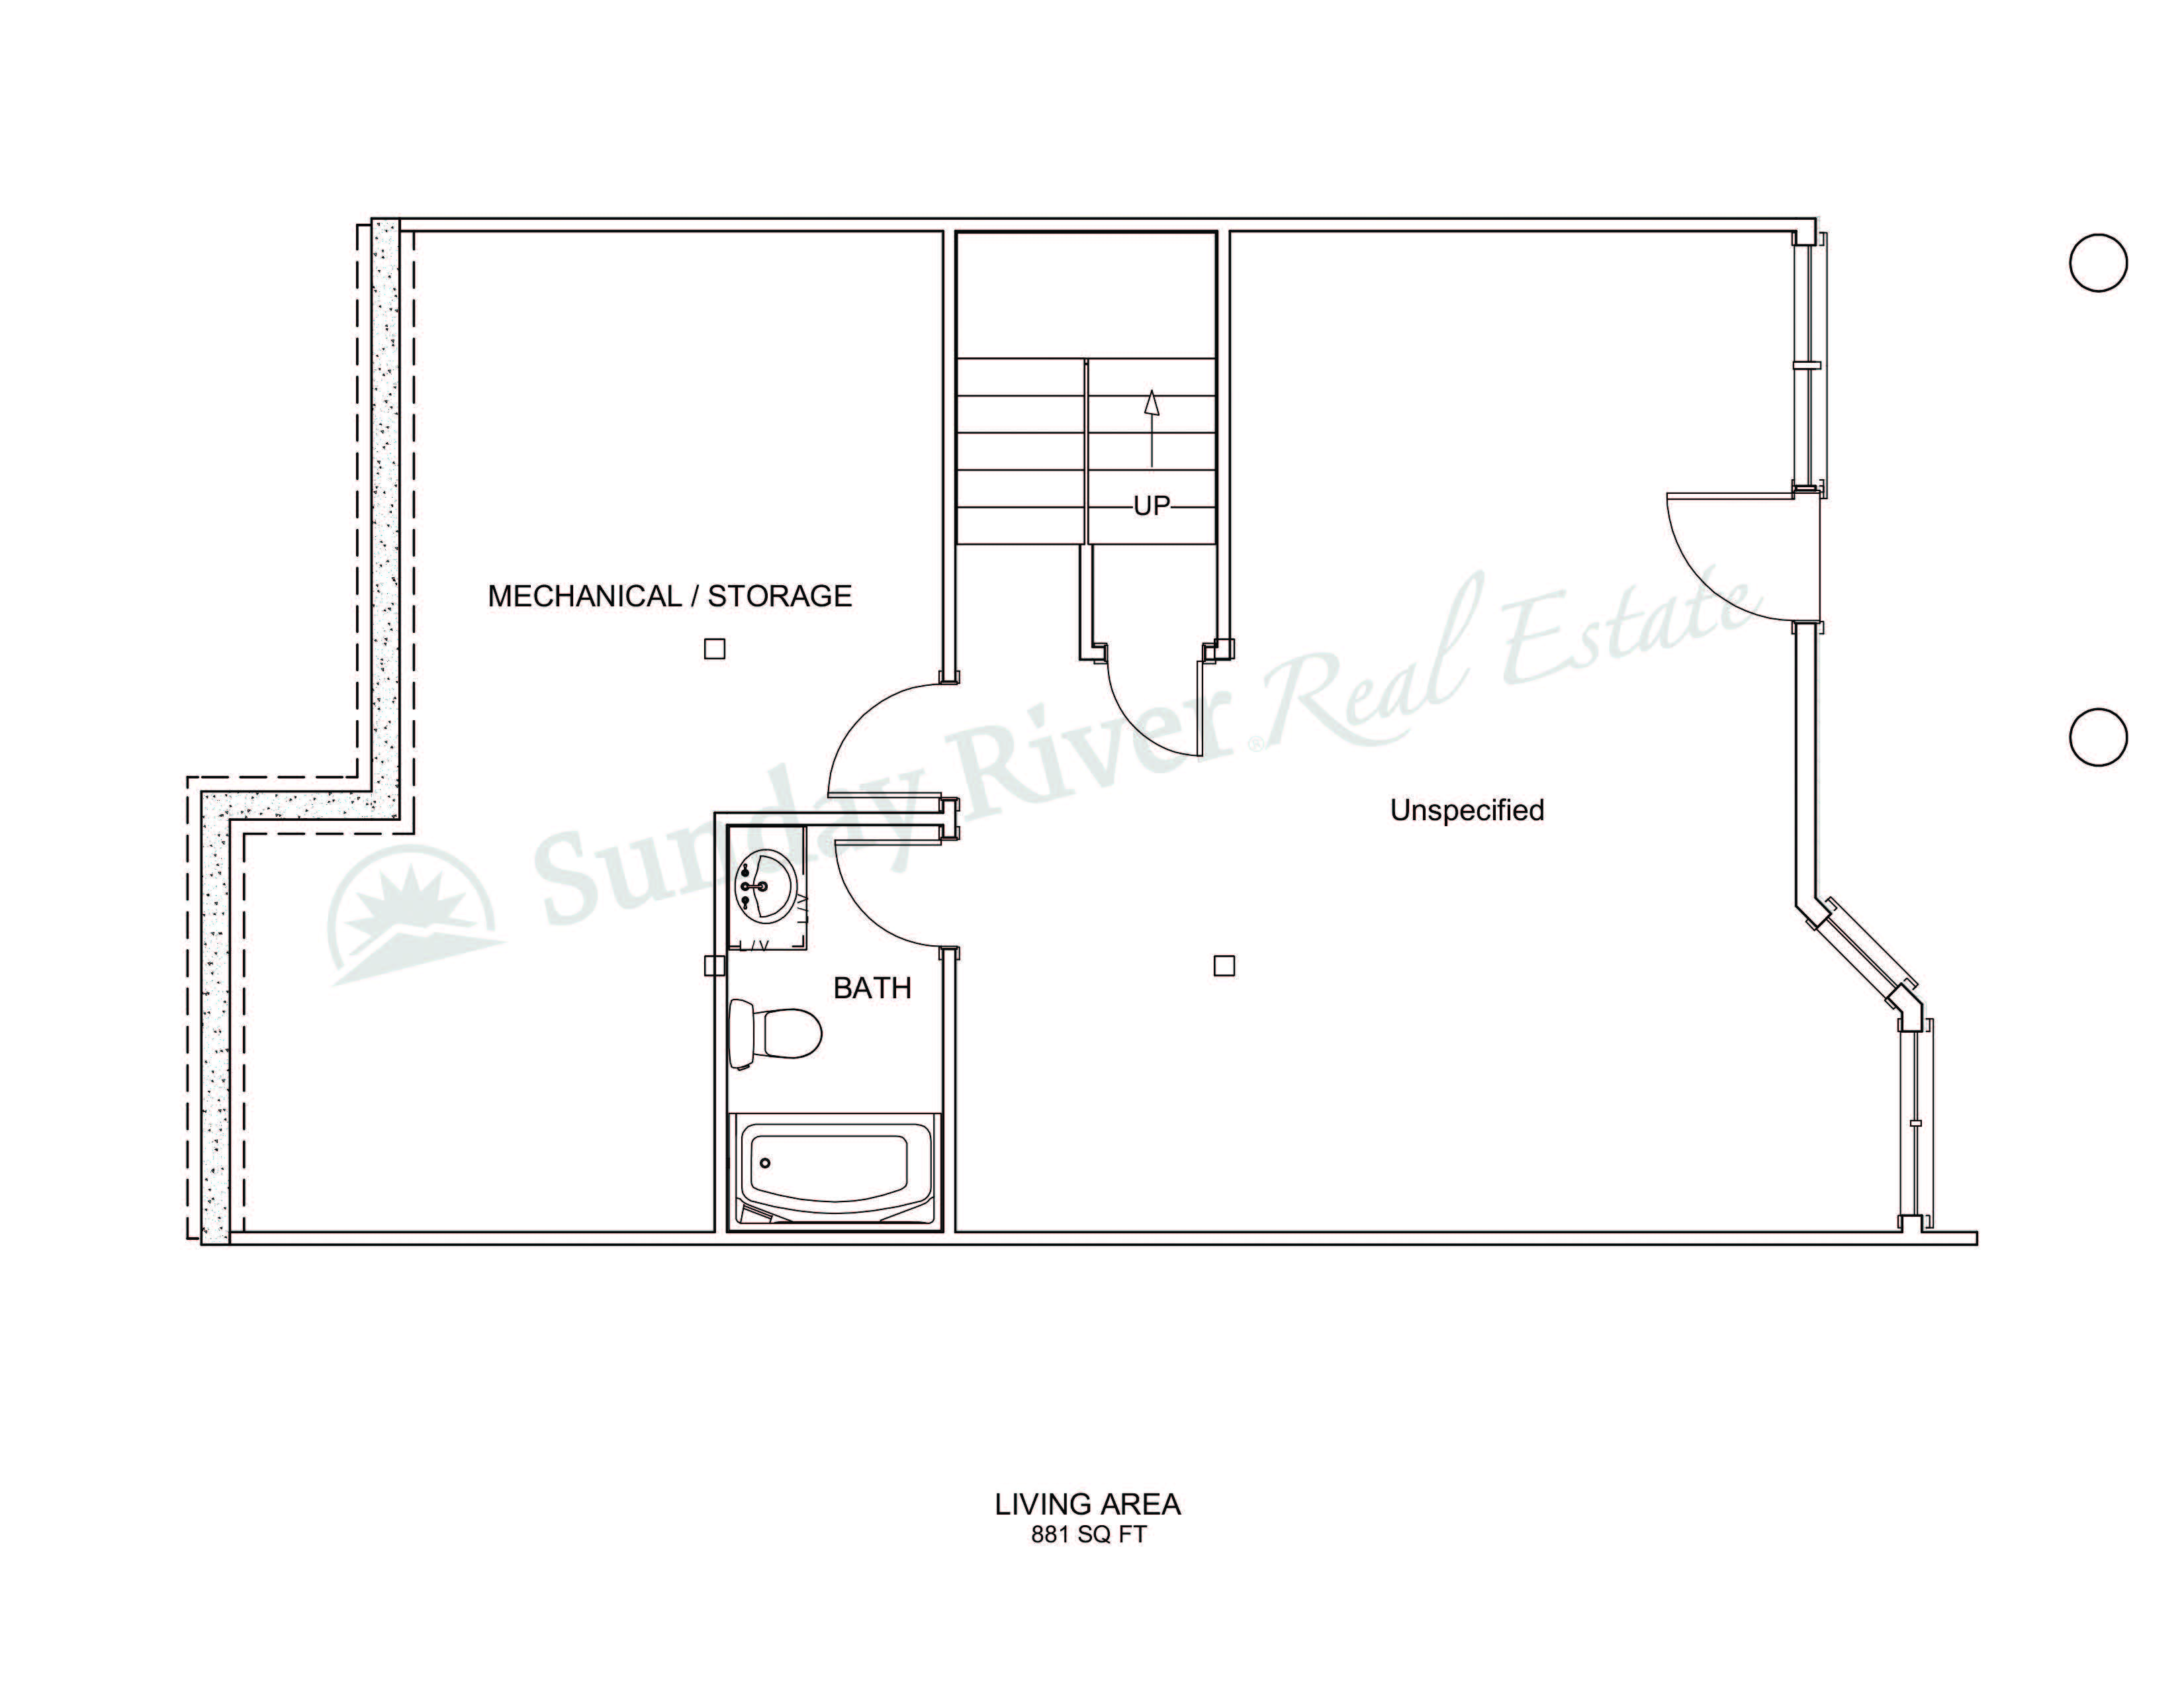 Center Unit | Basement Level